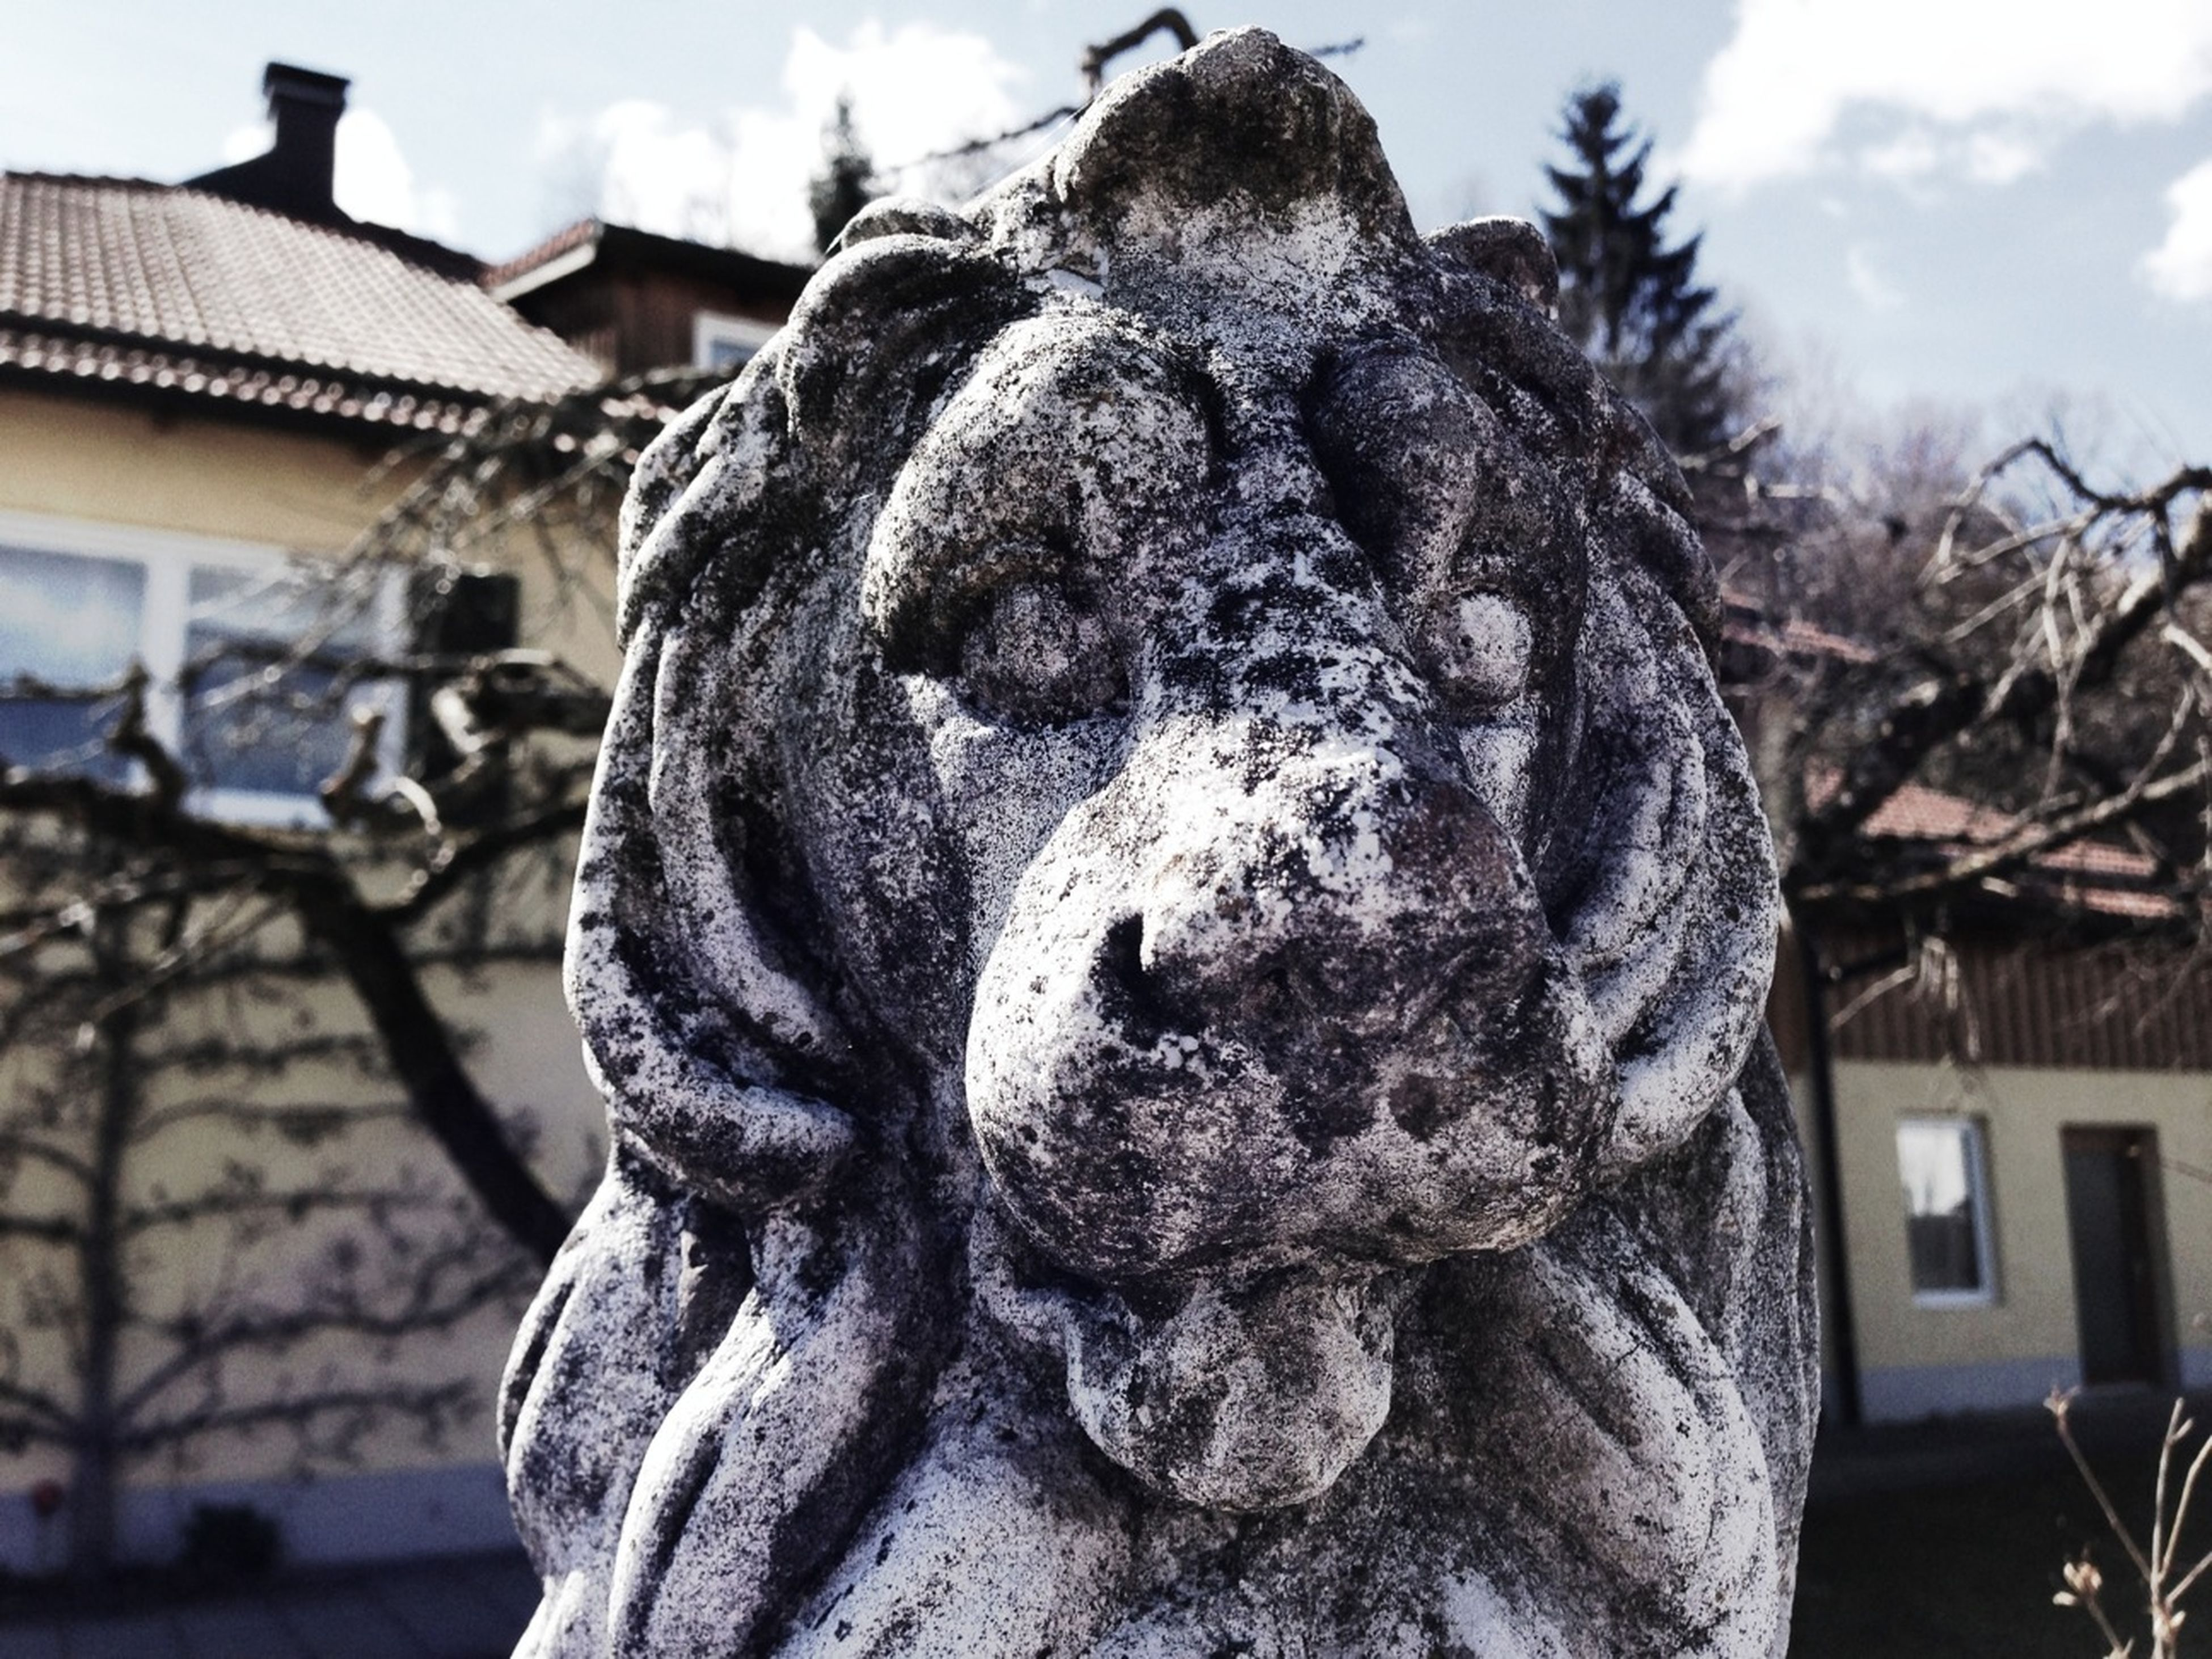 statue, sculpture, human representation, art and craft, art, creativity, building exterior, built structure, architecture, carving - craft product, focus on foreground, sky, craft, tree, animal representation, low angle view, religion, stone material